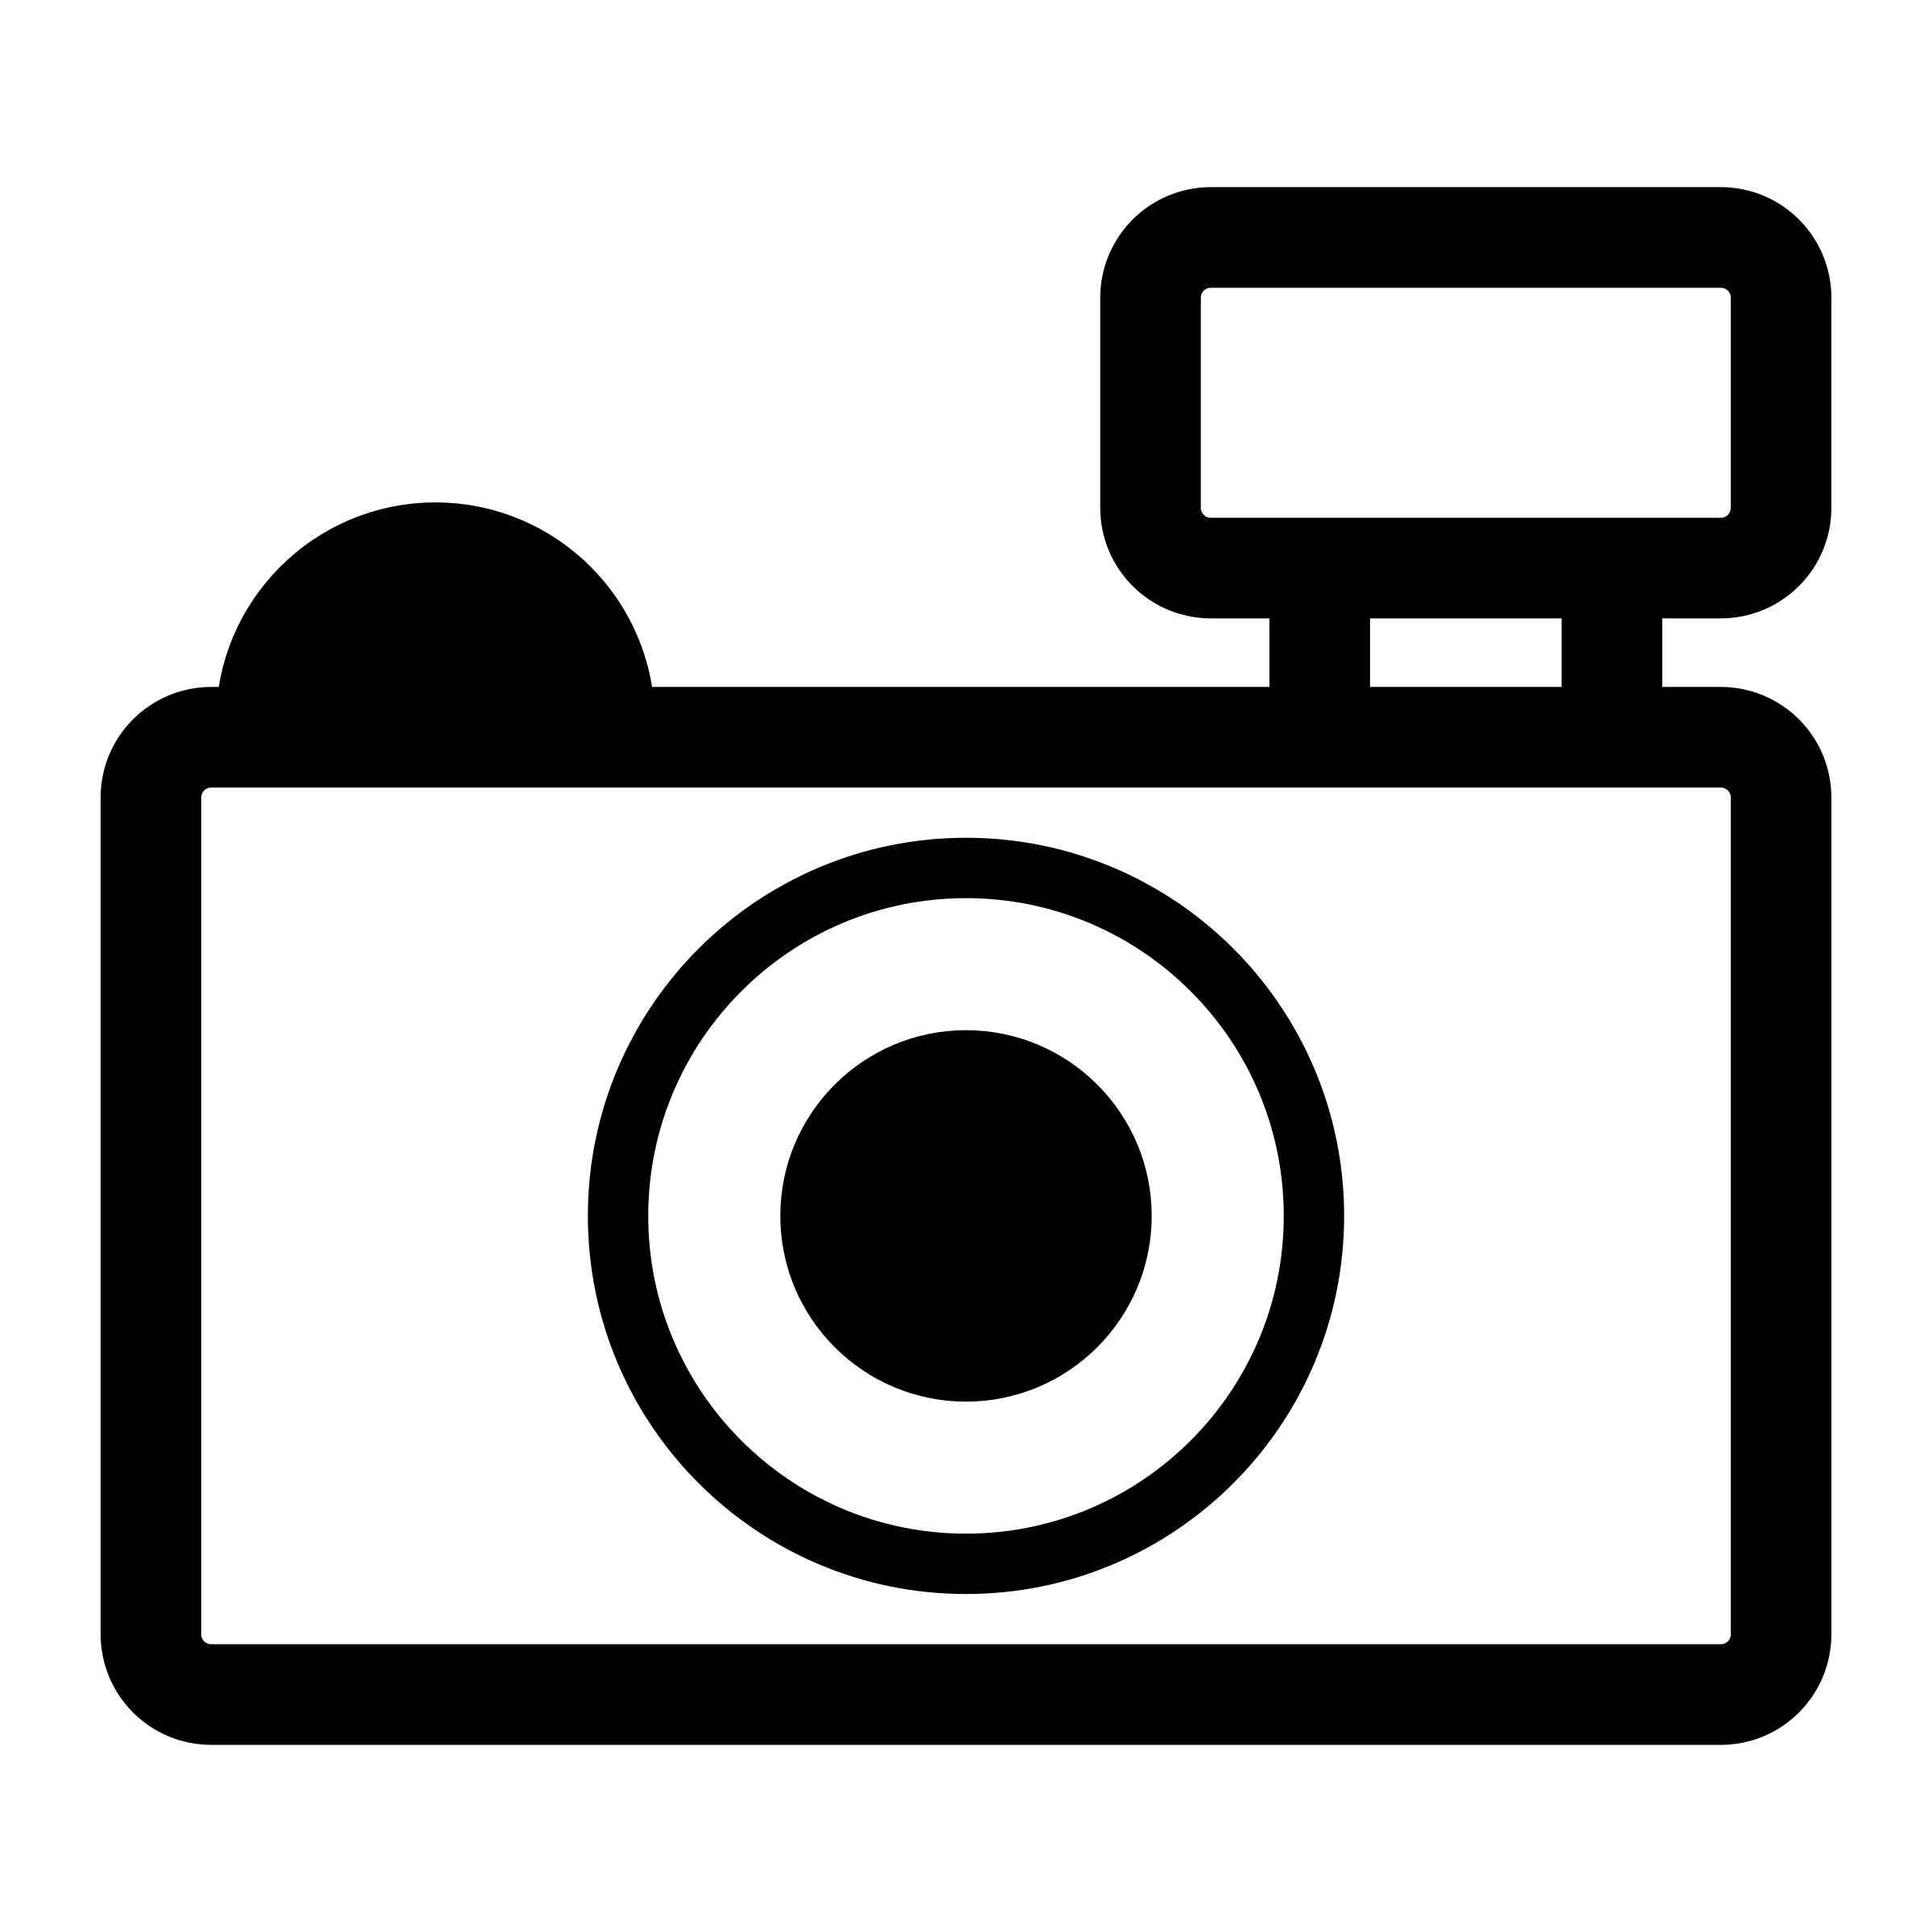 Old camera clipart free clip art image i-Old camera clipart free clip art image image-1